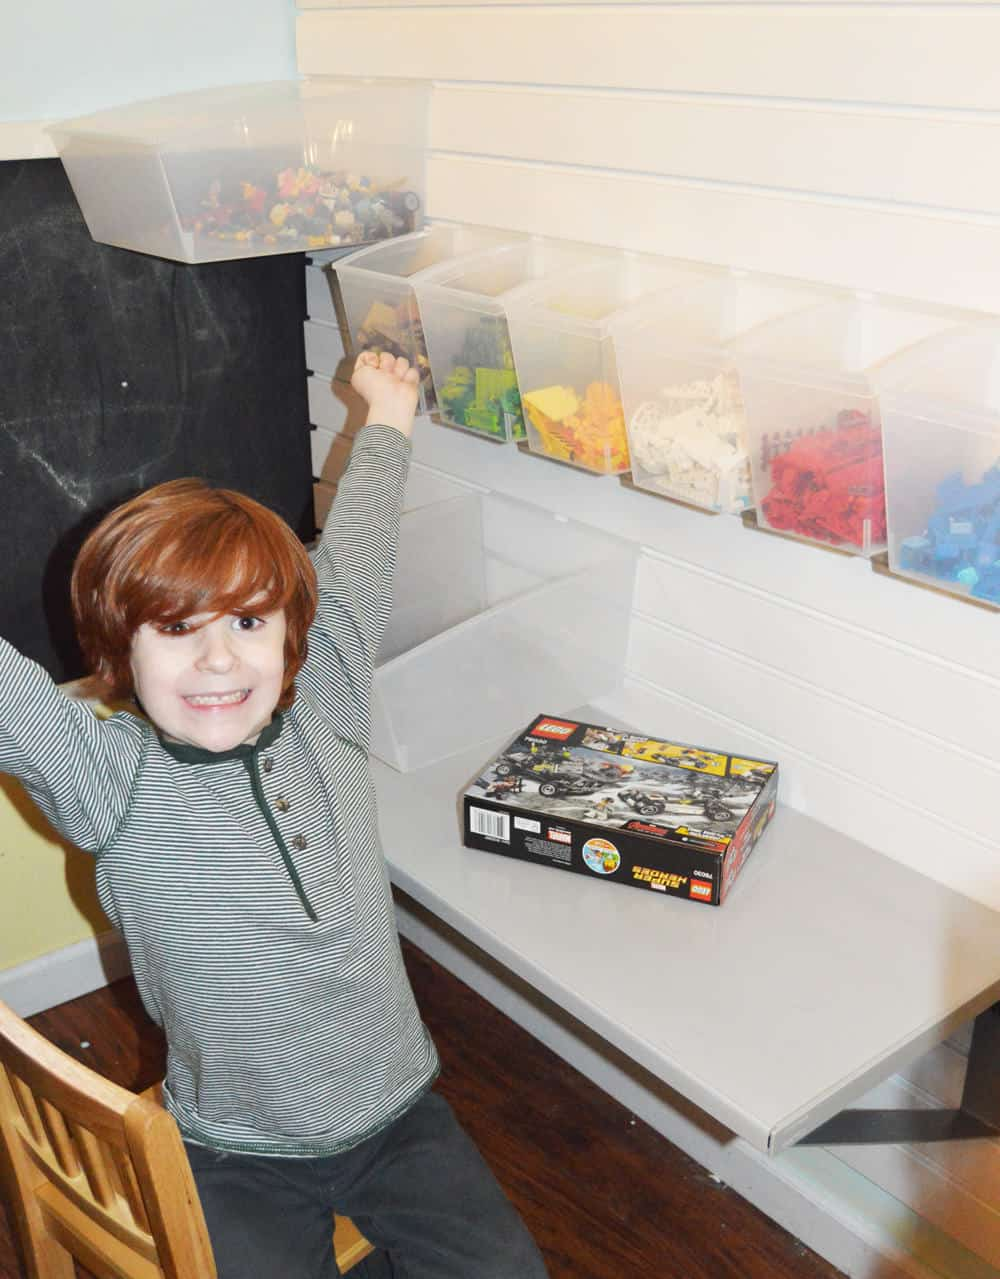 Let's Build A Lego Corner! How To Make A Perfect Play Area In 30 Minutes